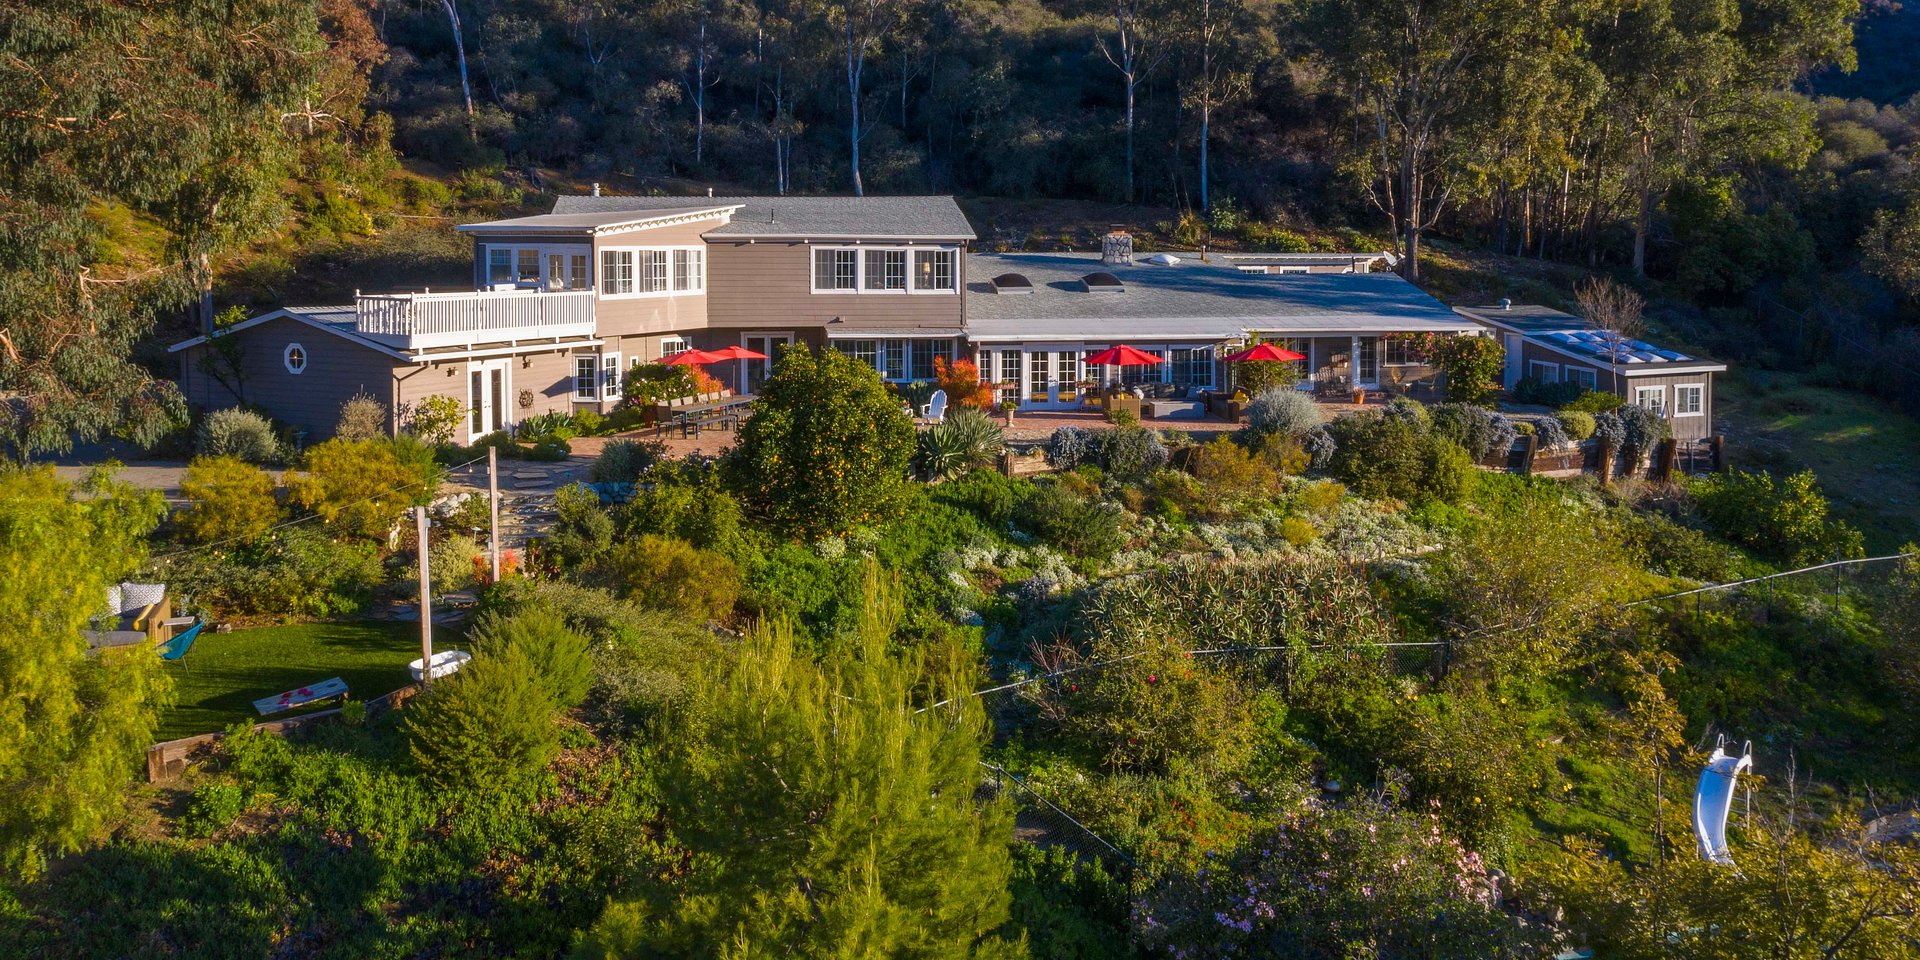 Coldwell Banker Realty Lists a Topanga Property for $5.5 Million